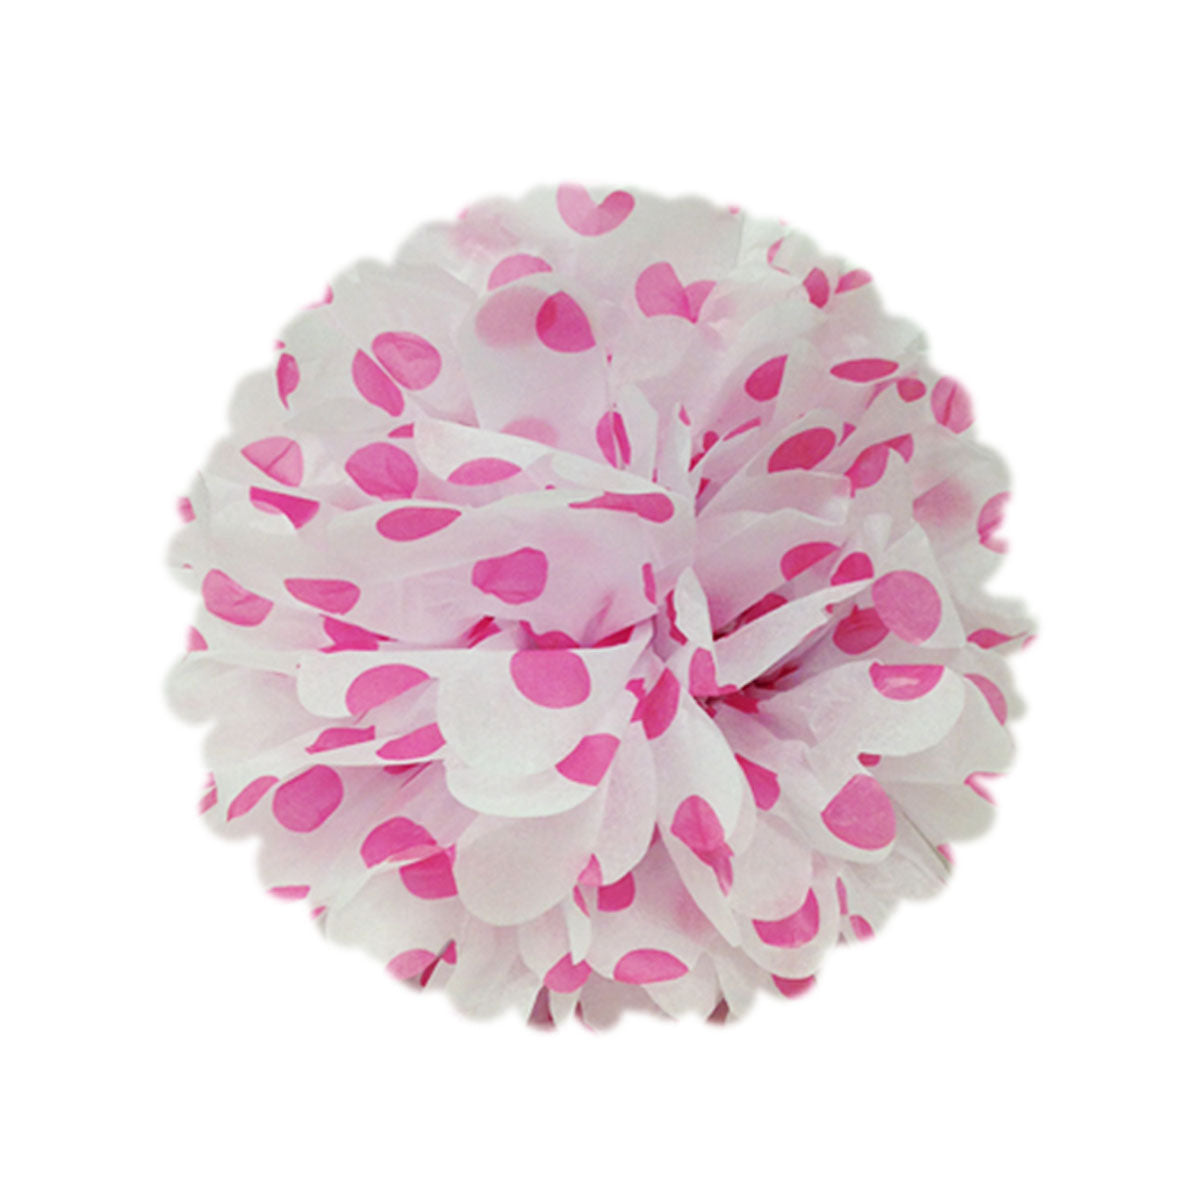 "Wrapables 8"" Set of 5 Tissue Pom Poms Party Decorations"